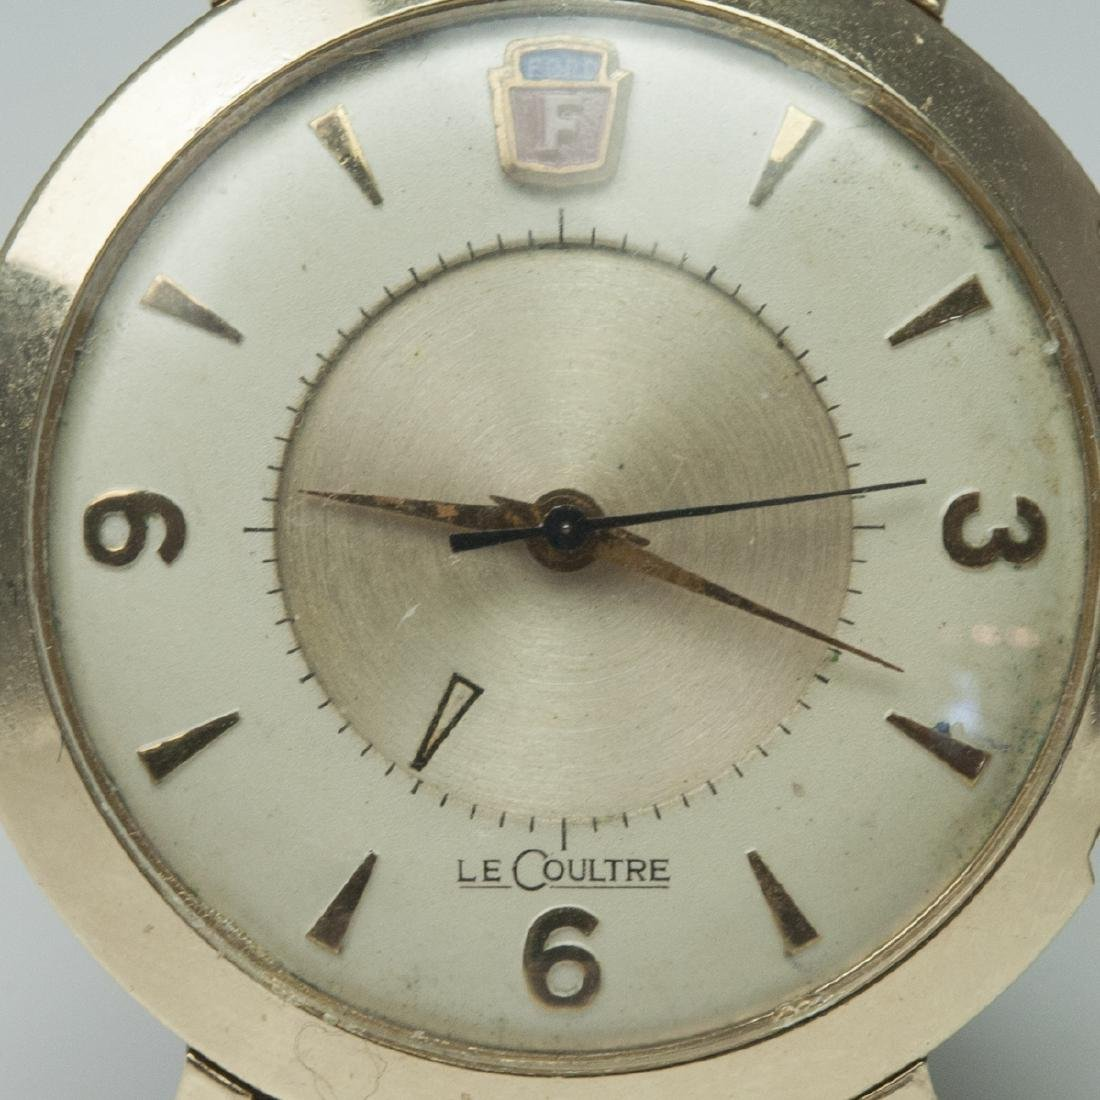 Vintage Jaeger Lecoultre Memovox Henry Ford Watch - 2